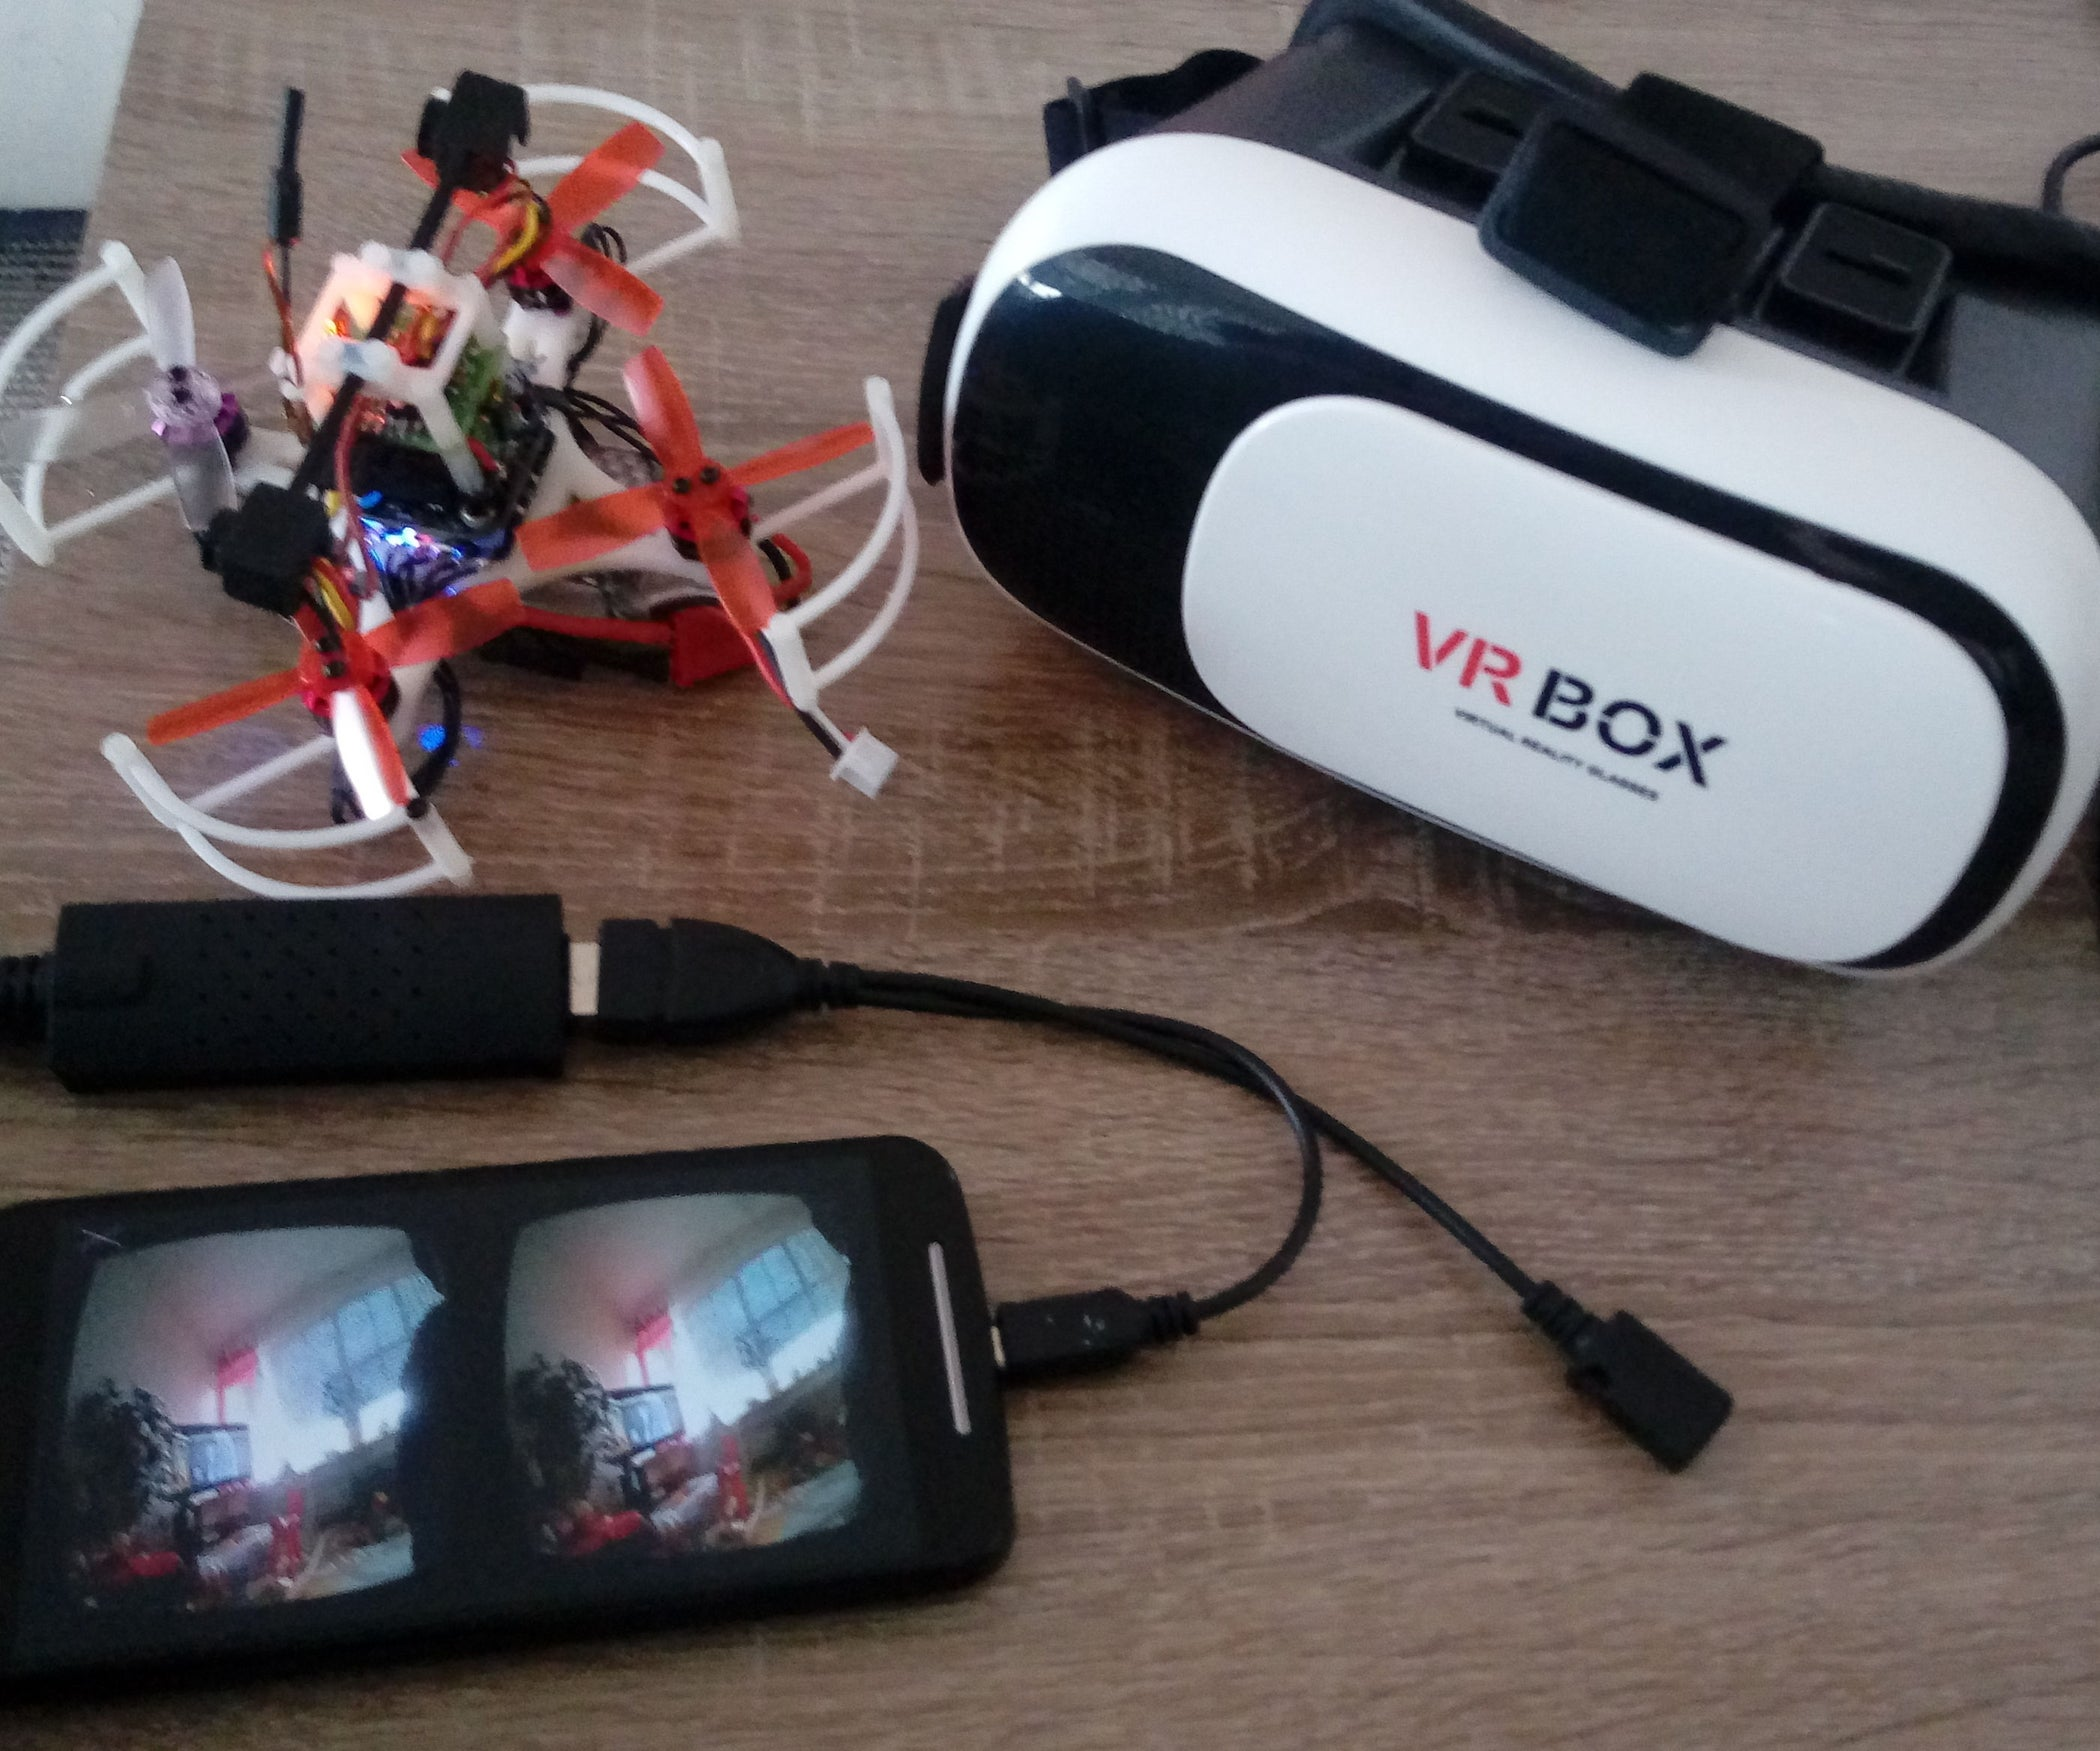 Lowcost 3d Fpv Camera For Android 7 Steps With Pictures Ntsc Pal Development Board